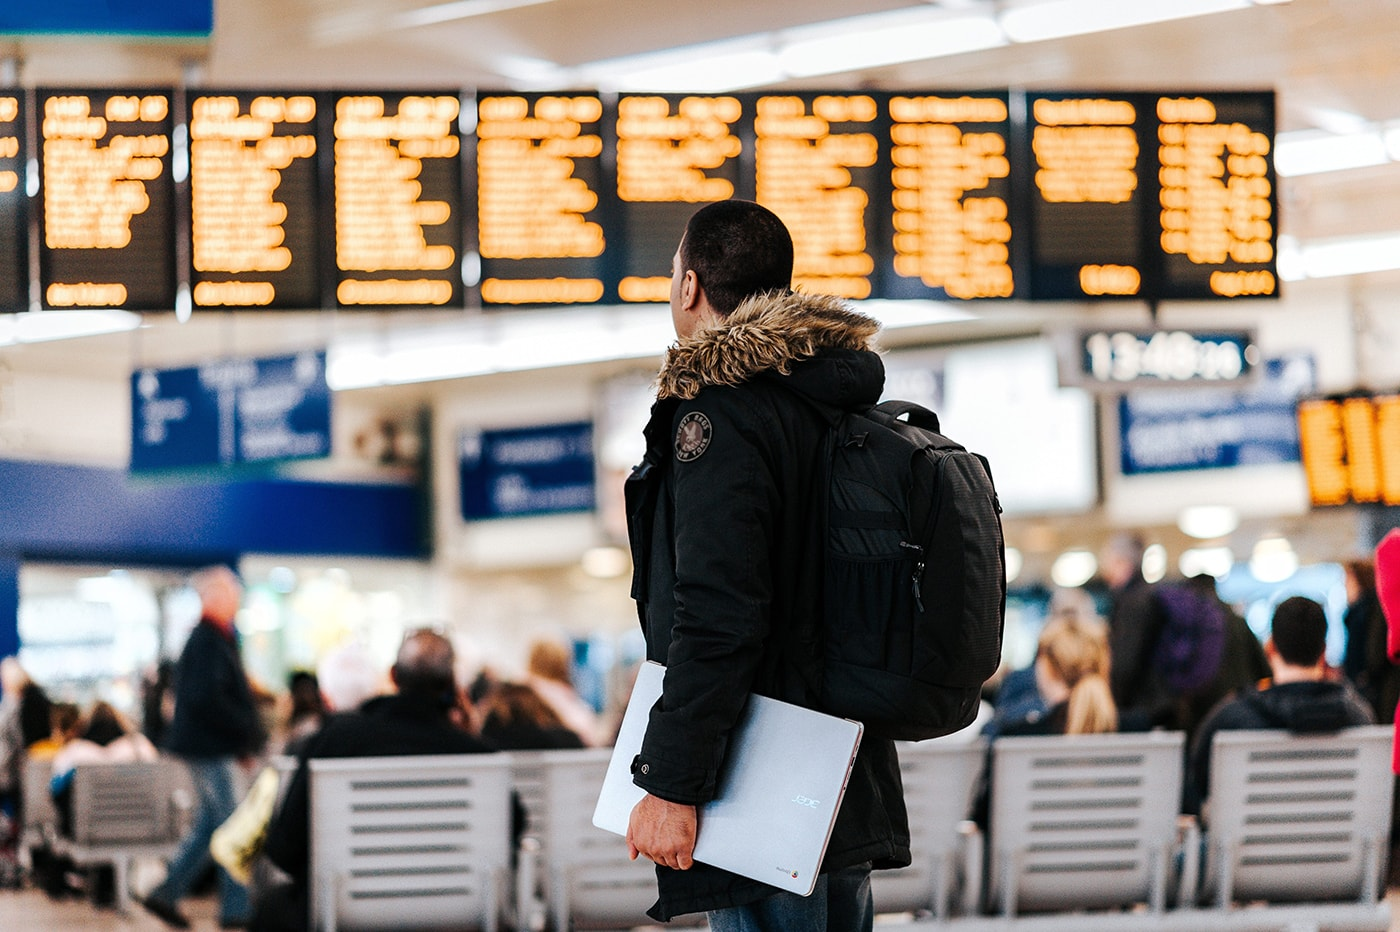 Tips for Dealing with Flight Delays or Cancellations